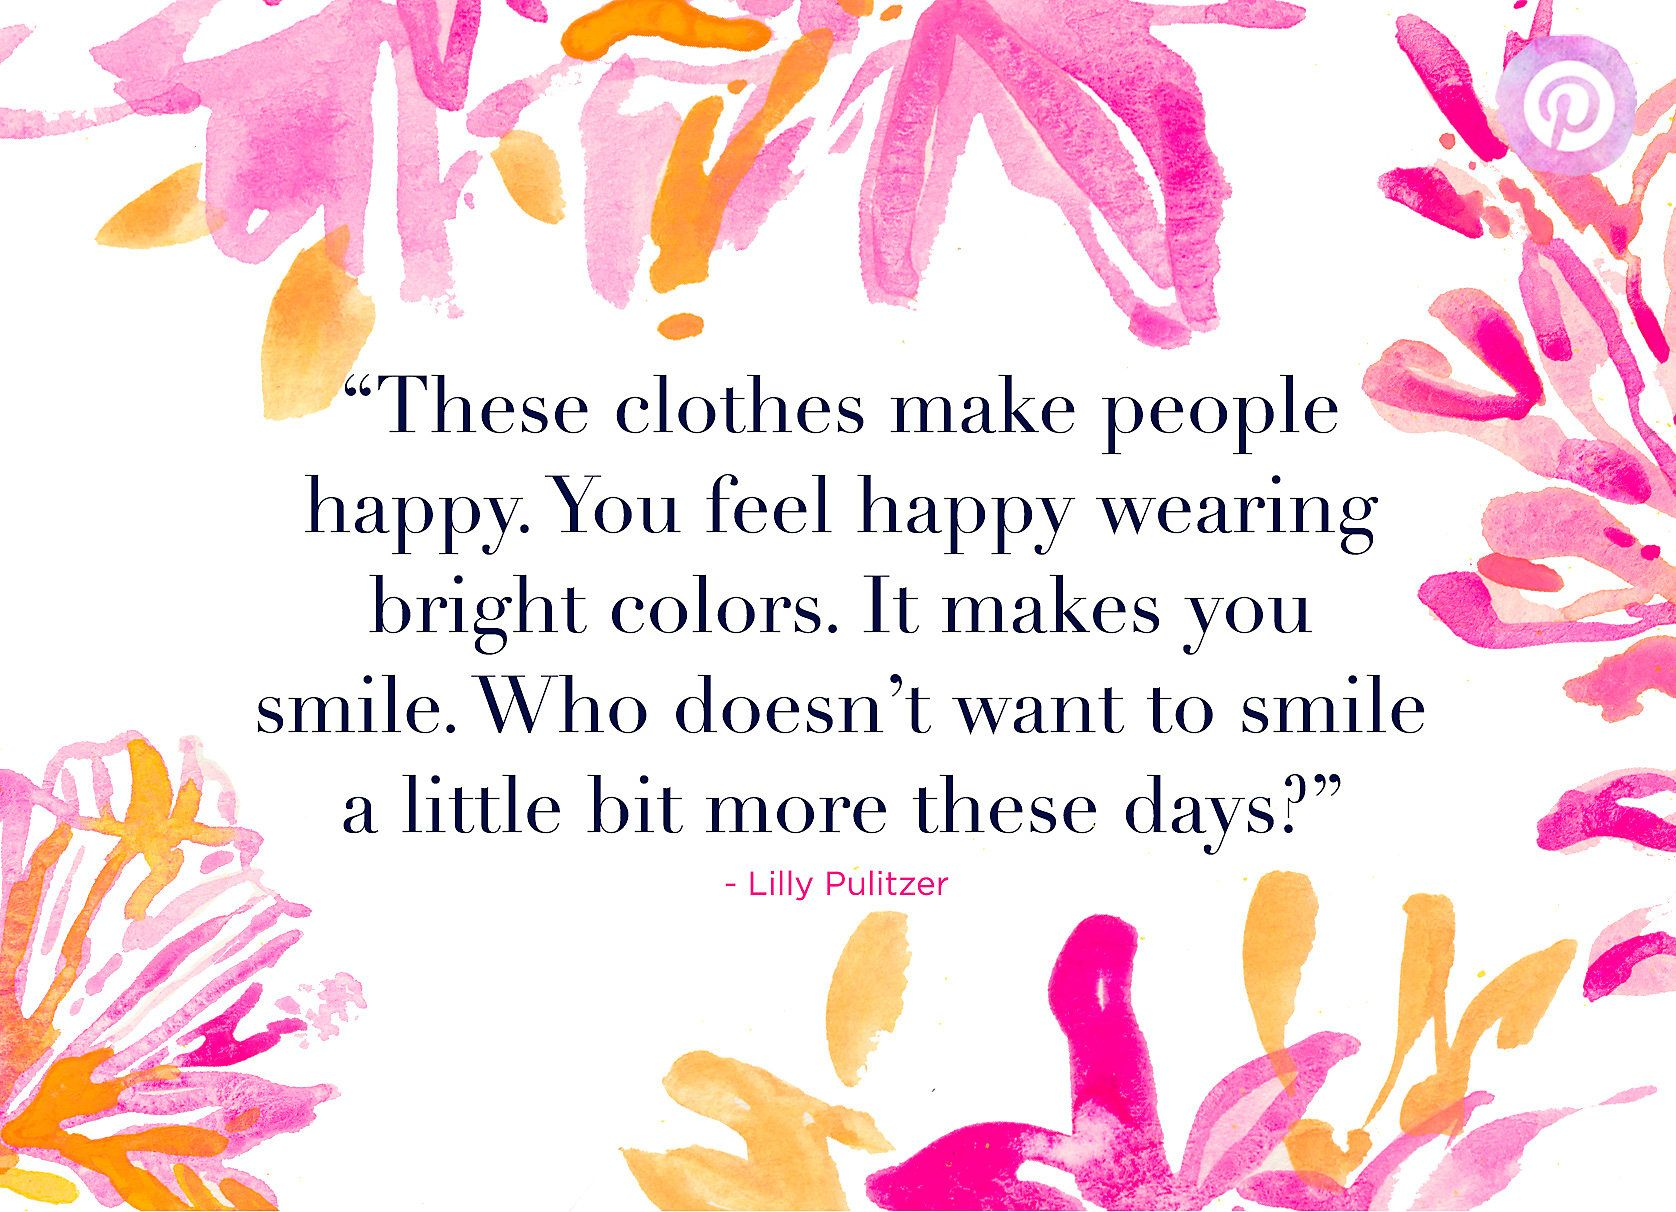 Lilly Pulitzer Quotes Lilly Pulitzer Quote About Lilly Clothes Making People Smile